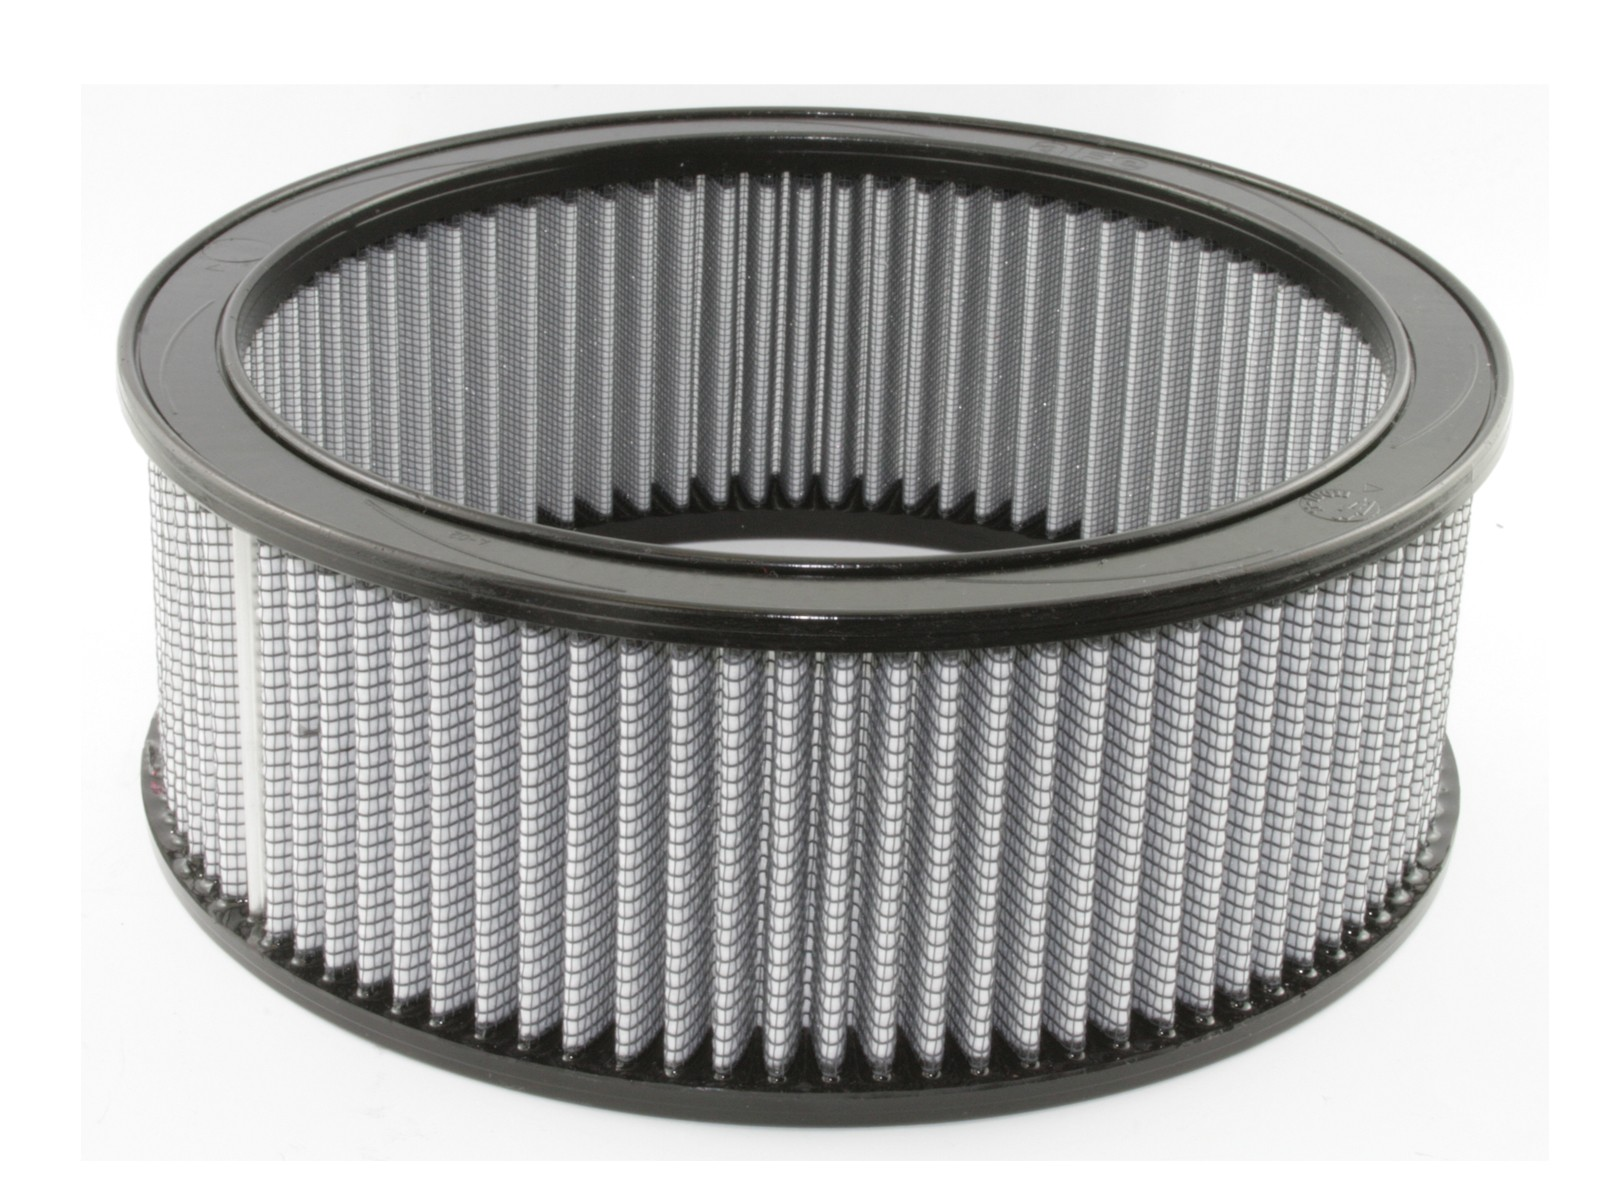 aFe POWER 11-10011 Magnum FLOW Pro DRY S Air Filter